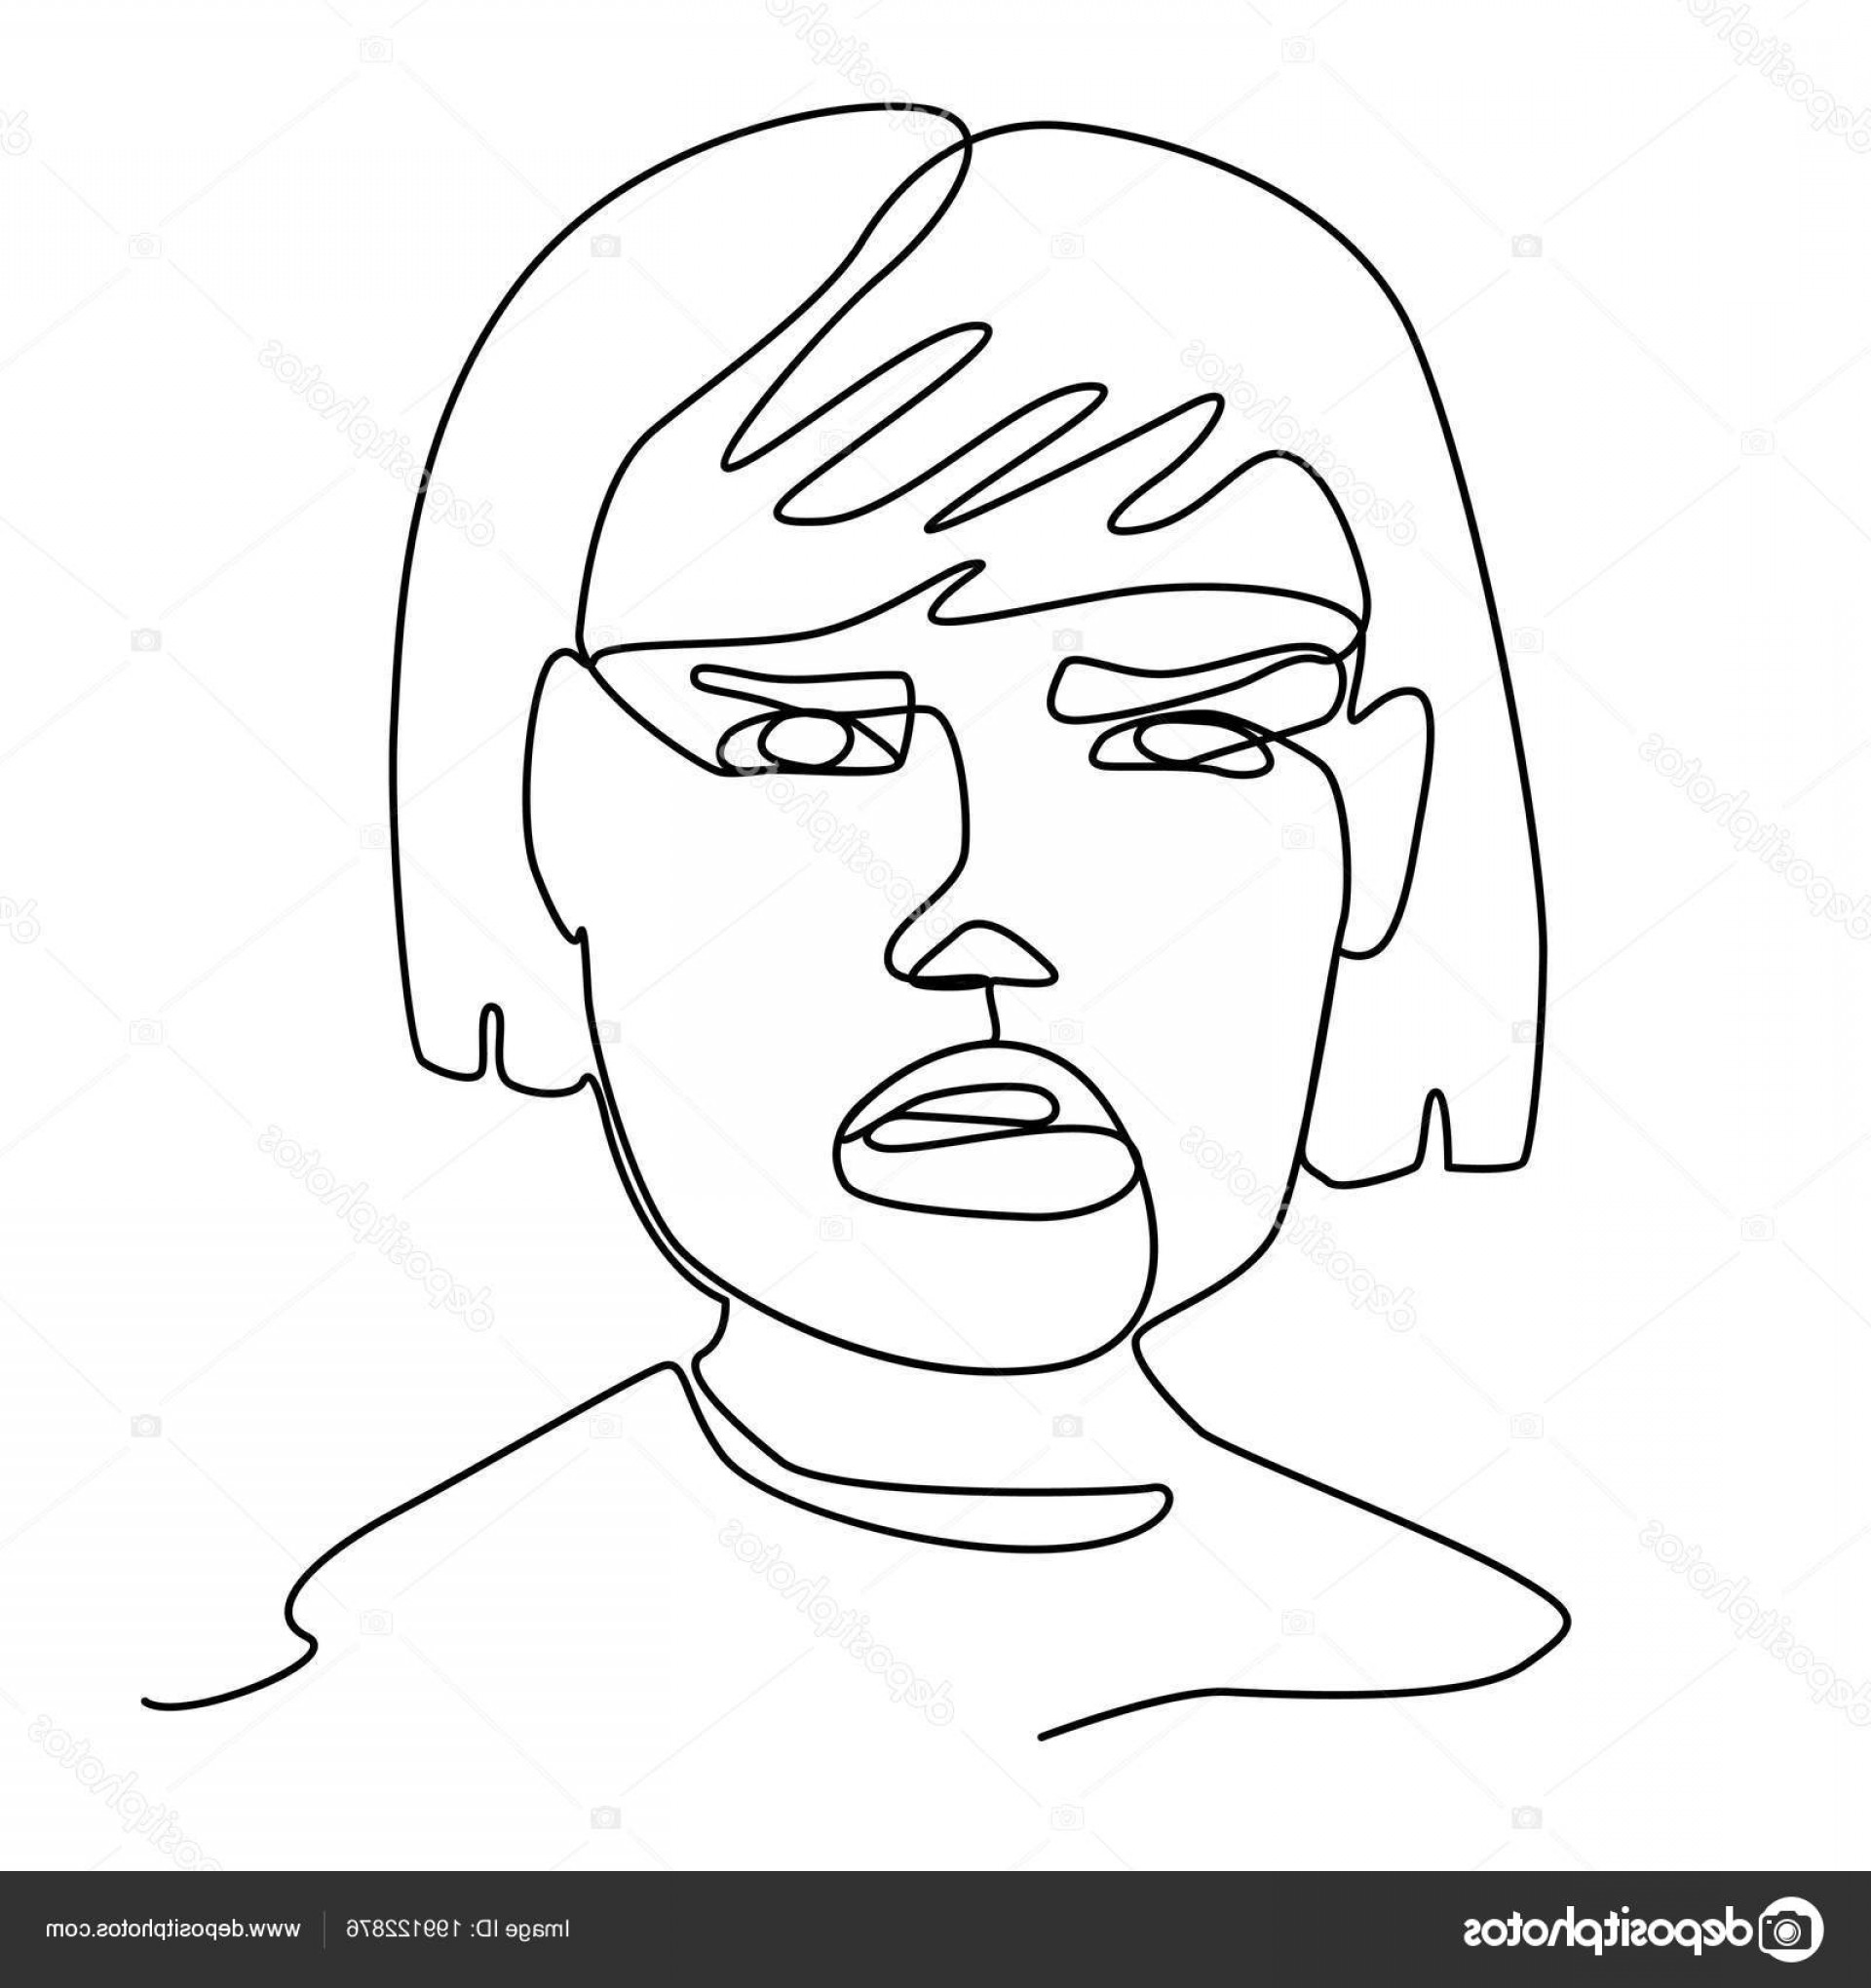 Woman Silhouette Vector Face Expression: Stock Illustration Sad Woman One Line Art